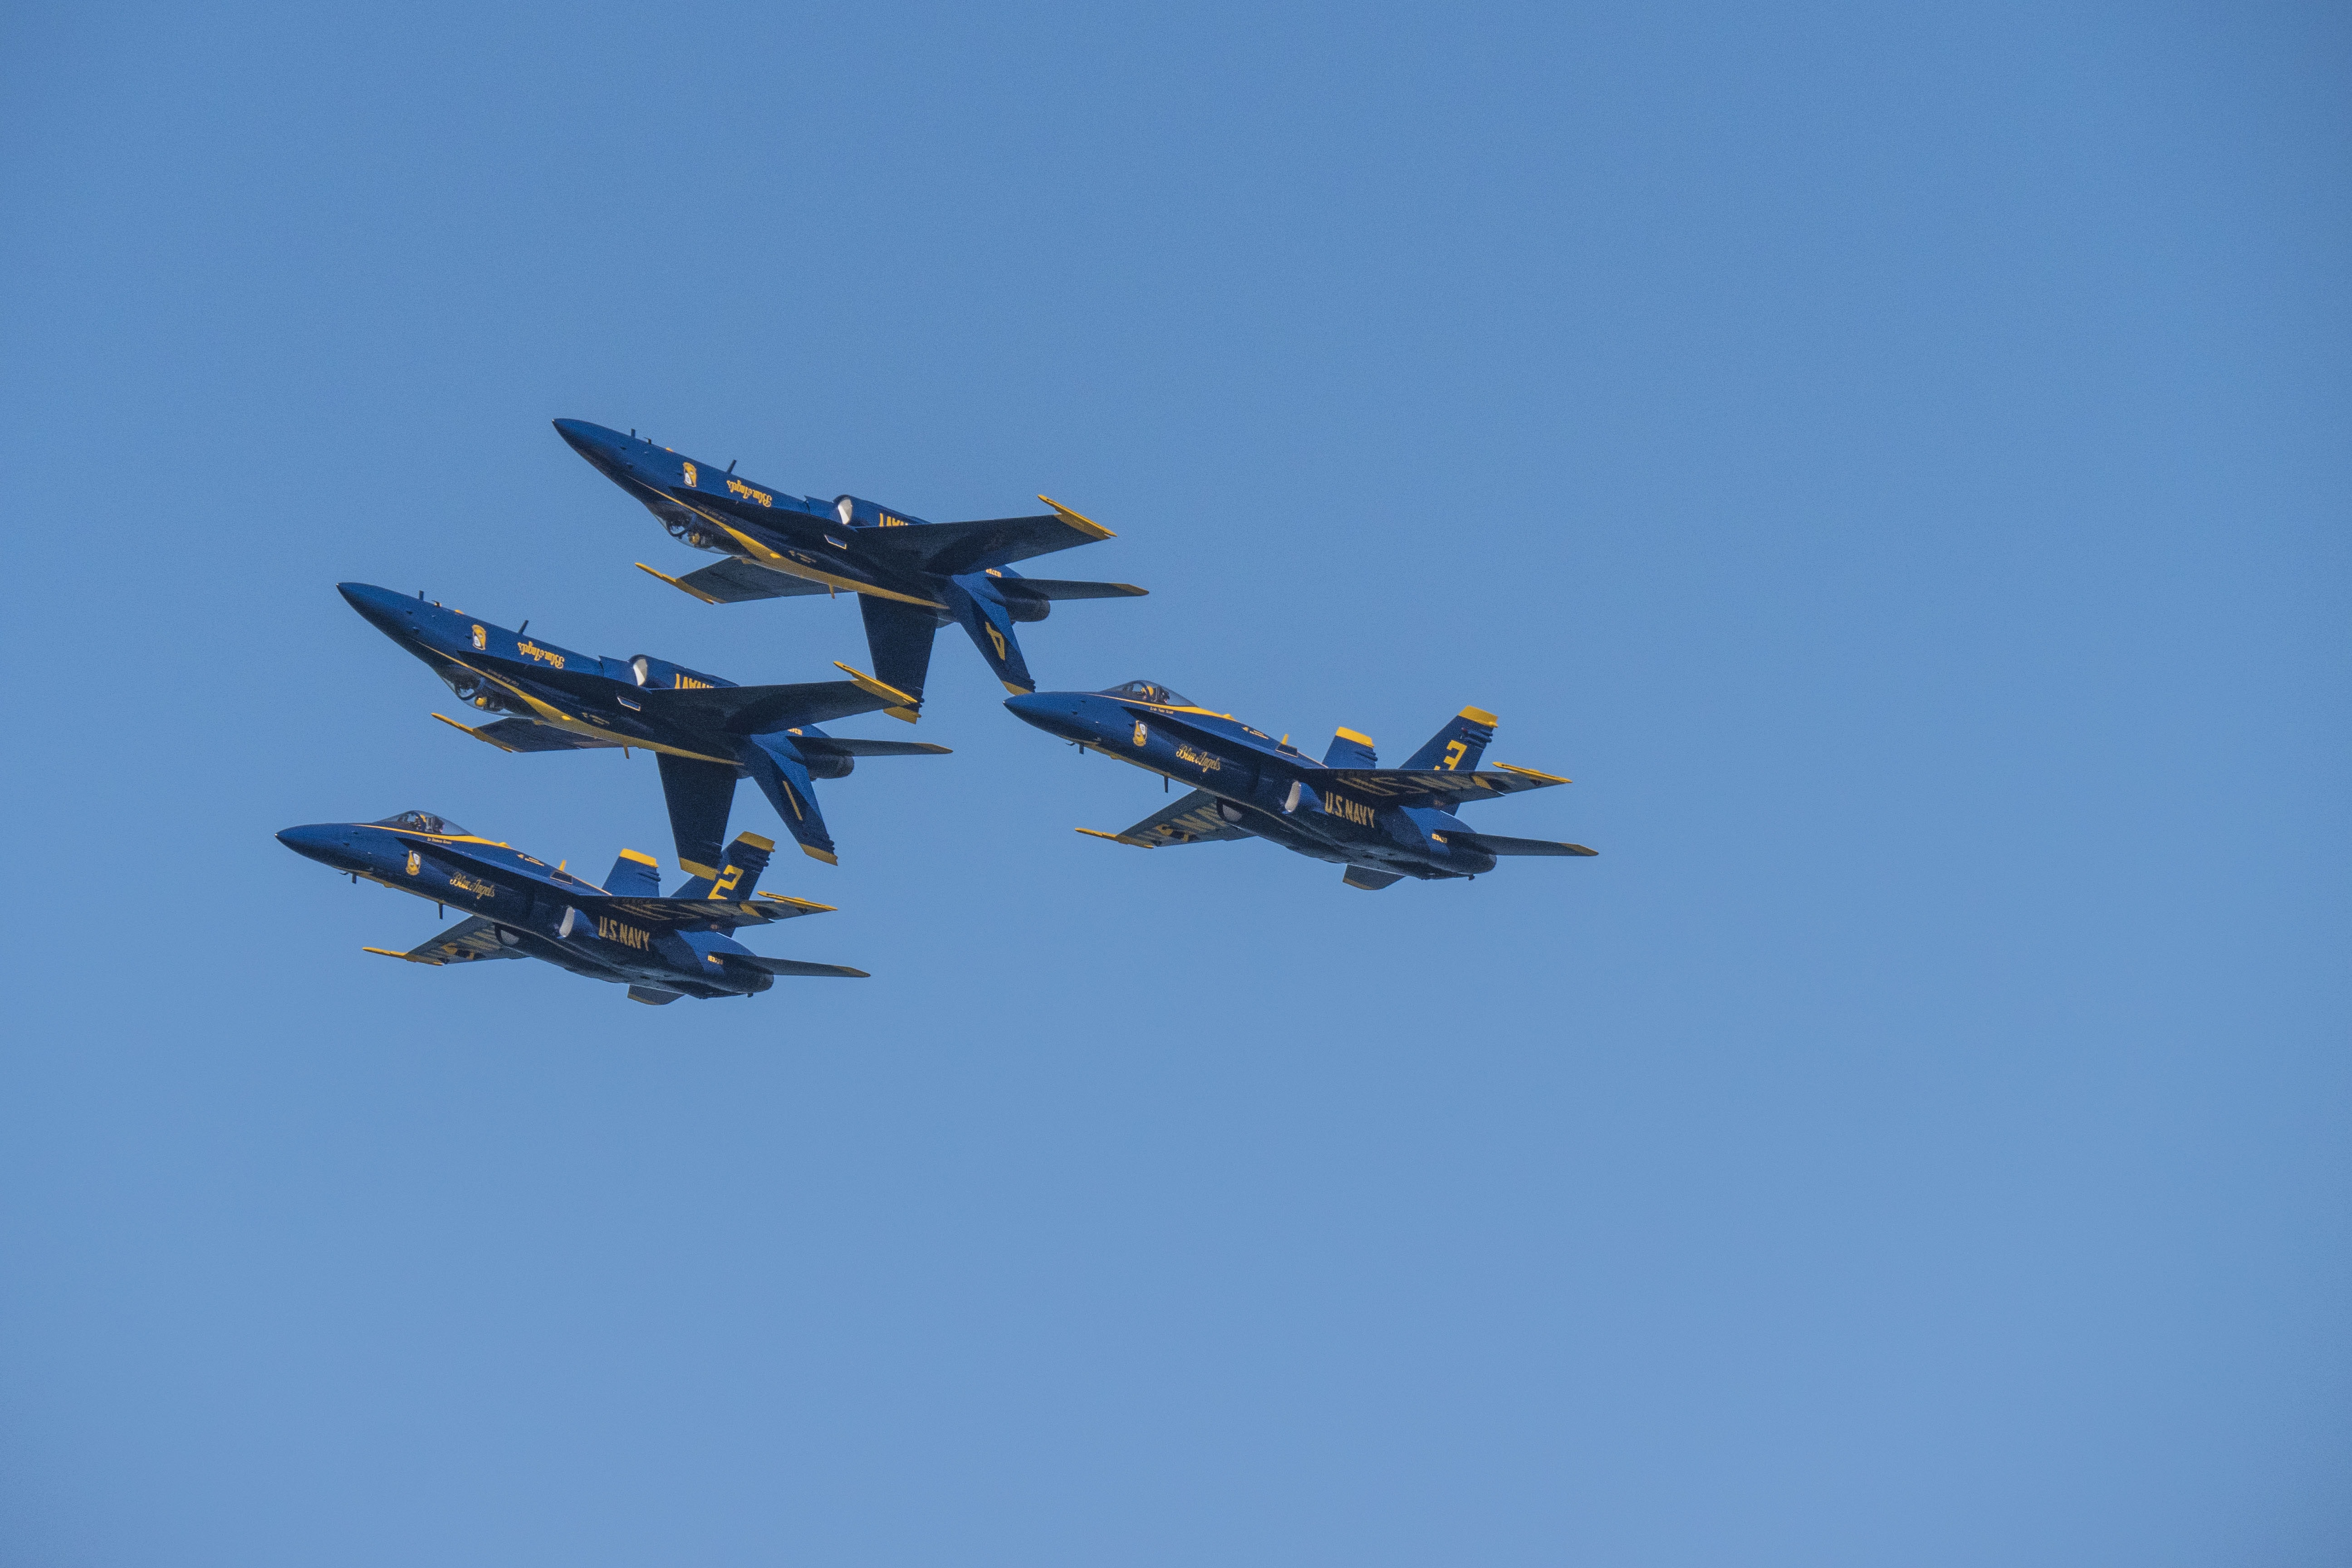 four blue-and-yellow aircrafts performing air show trick